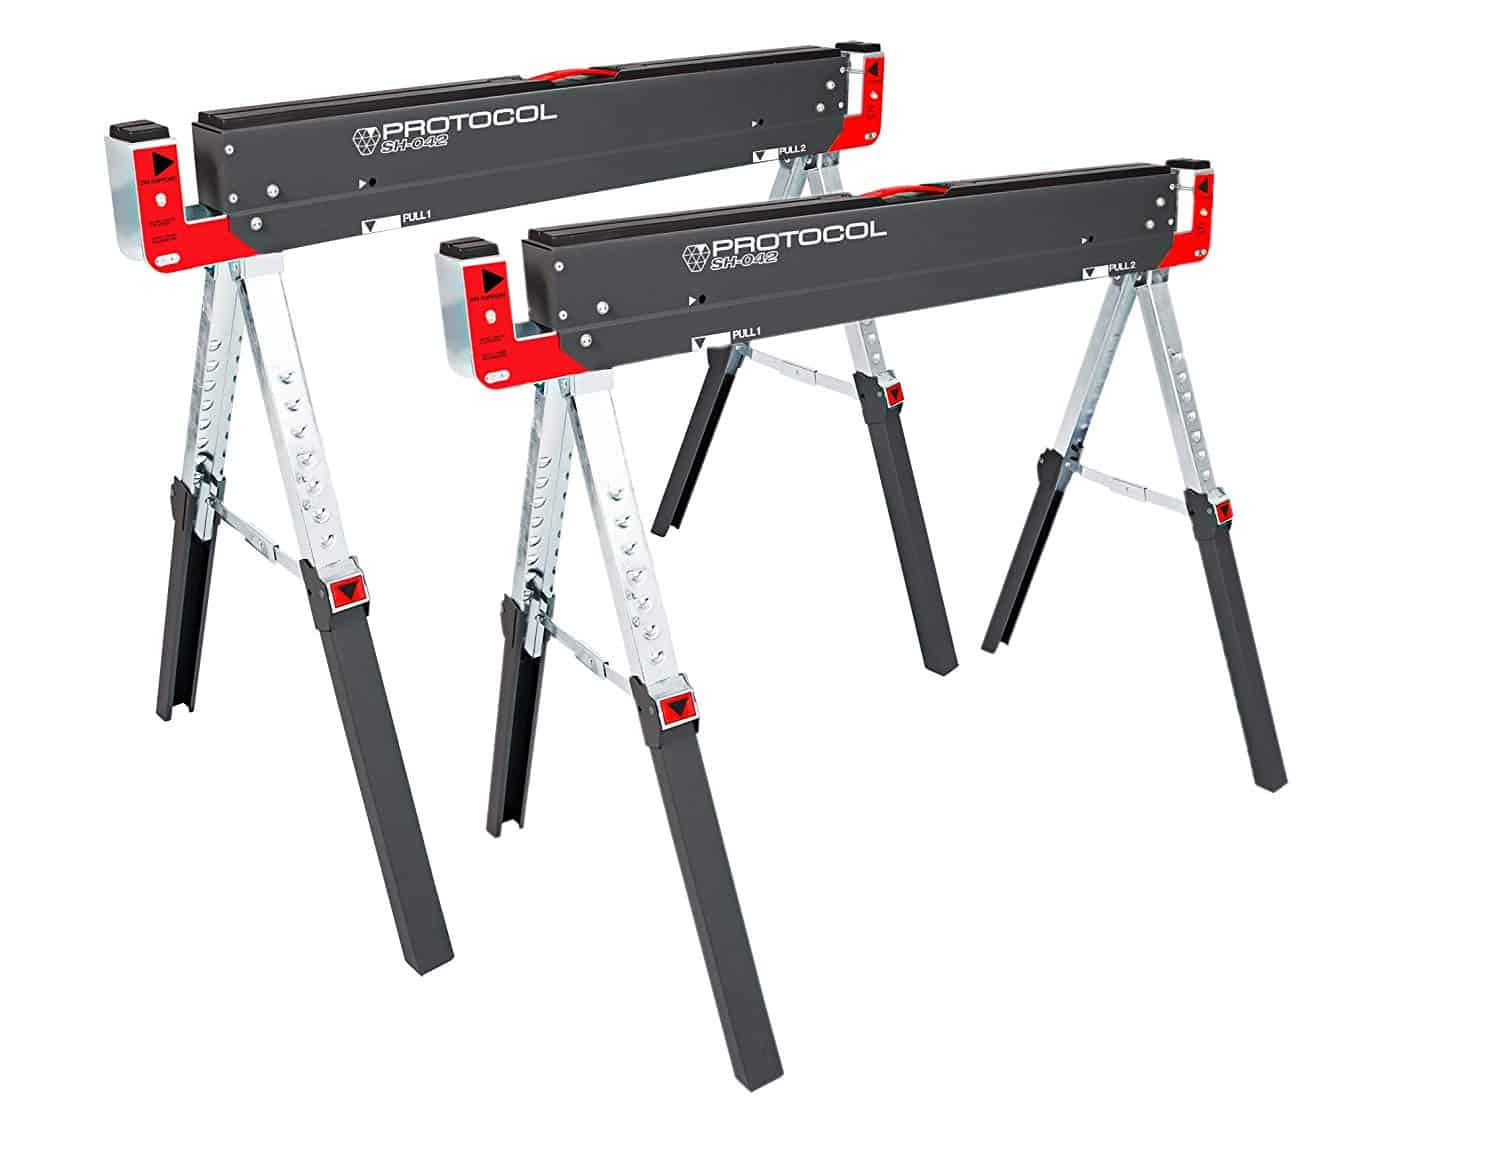 PROTOCOL Equipment SH-042 Work Shop Adjustable Sawhorse